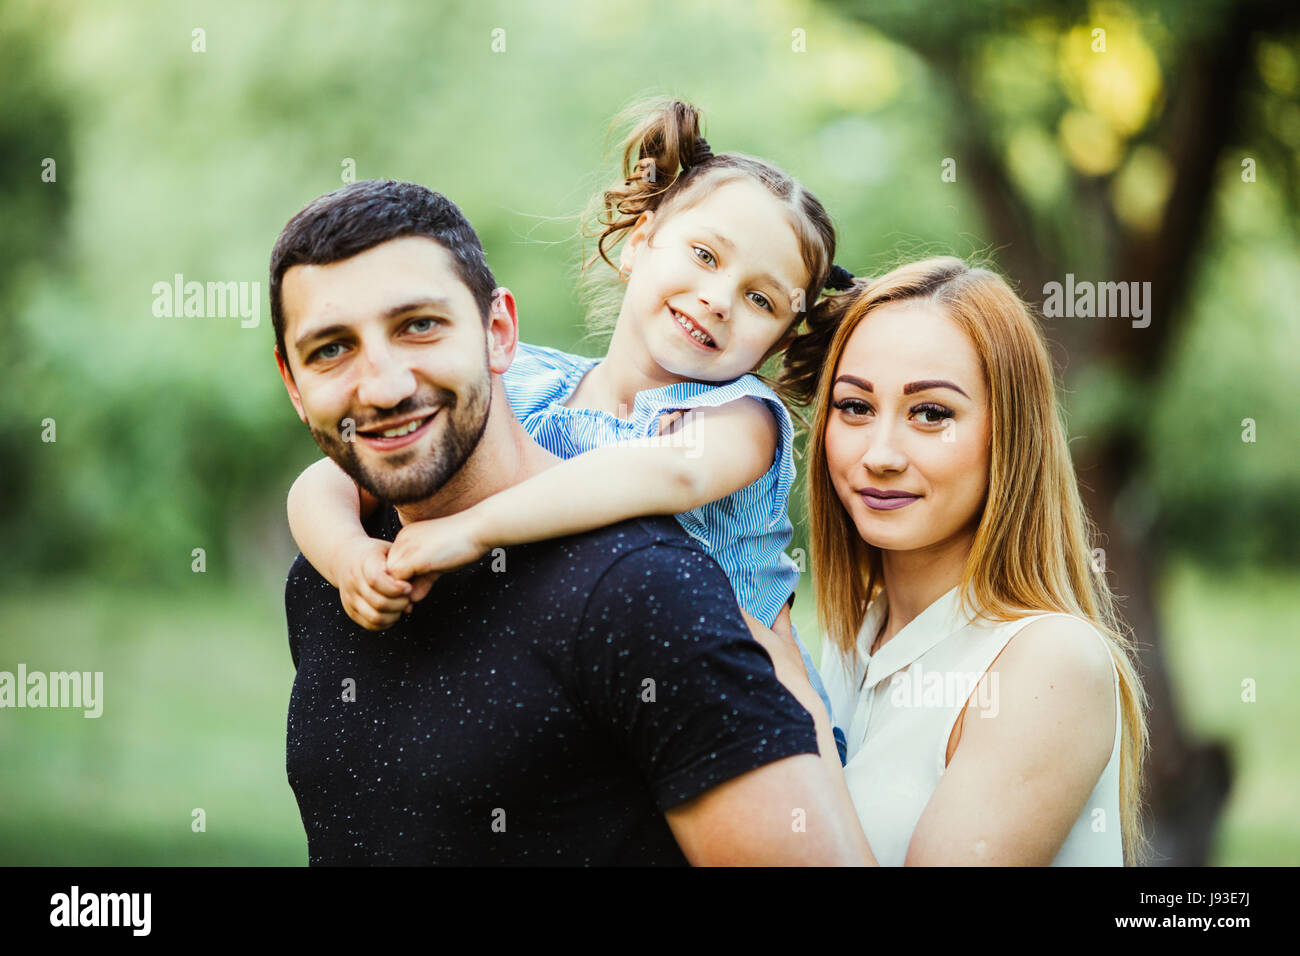 Happy joyful young family father, mother and daughter having fun outdoors, playing together in summer park, countryside. - Stock Image